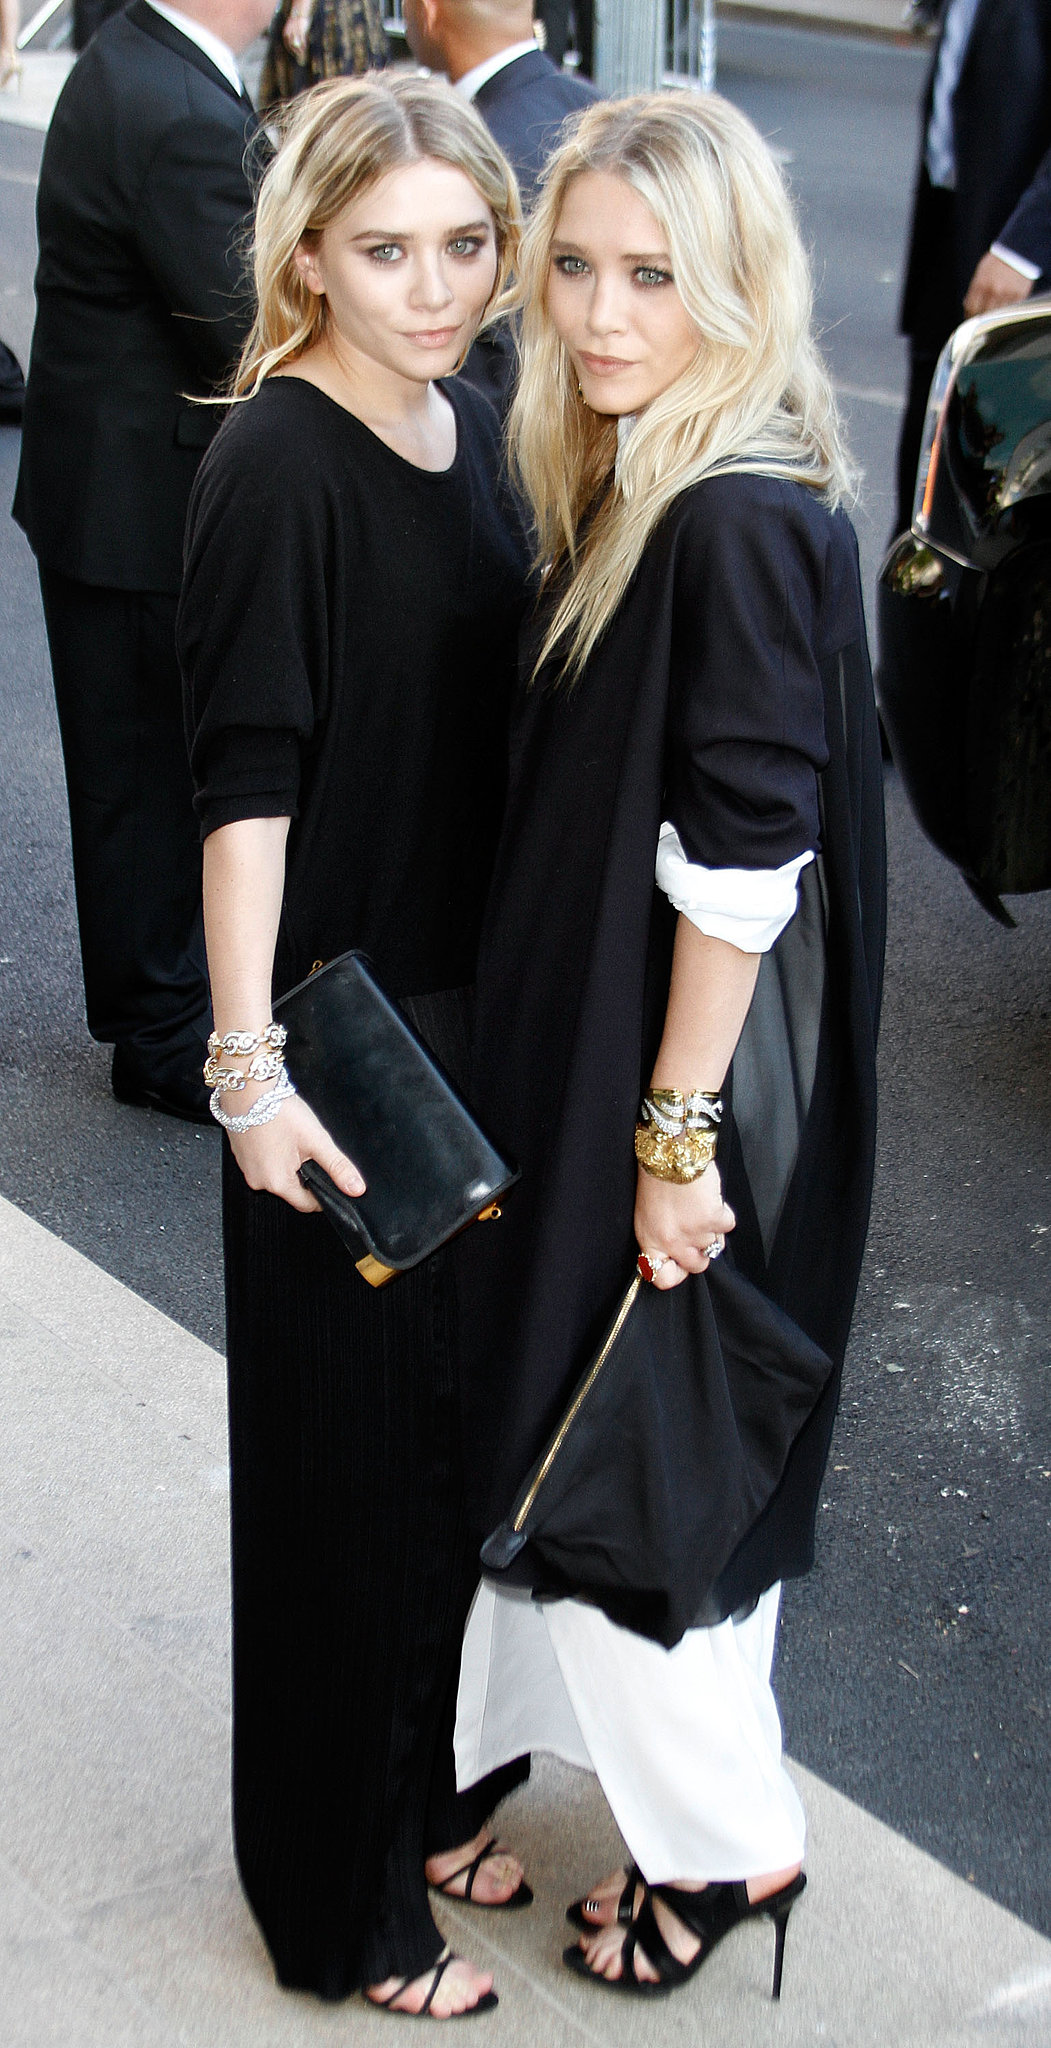 Twinning combo: Stacks of bracelets, slick black clutches, and strappy sandals? Check! The girls were ready to take on the big city in June 2007.  Ashley added a dash of dazzle to her black-on-black look with three diamond bracelets. Mary-Kate layered an oversize black jacket over her white maxi, then slipped on a few animal bangles for the final touch.